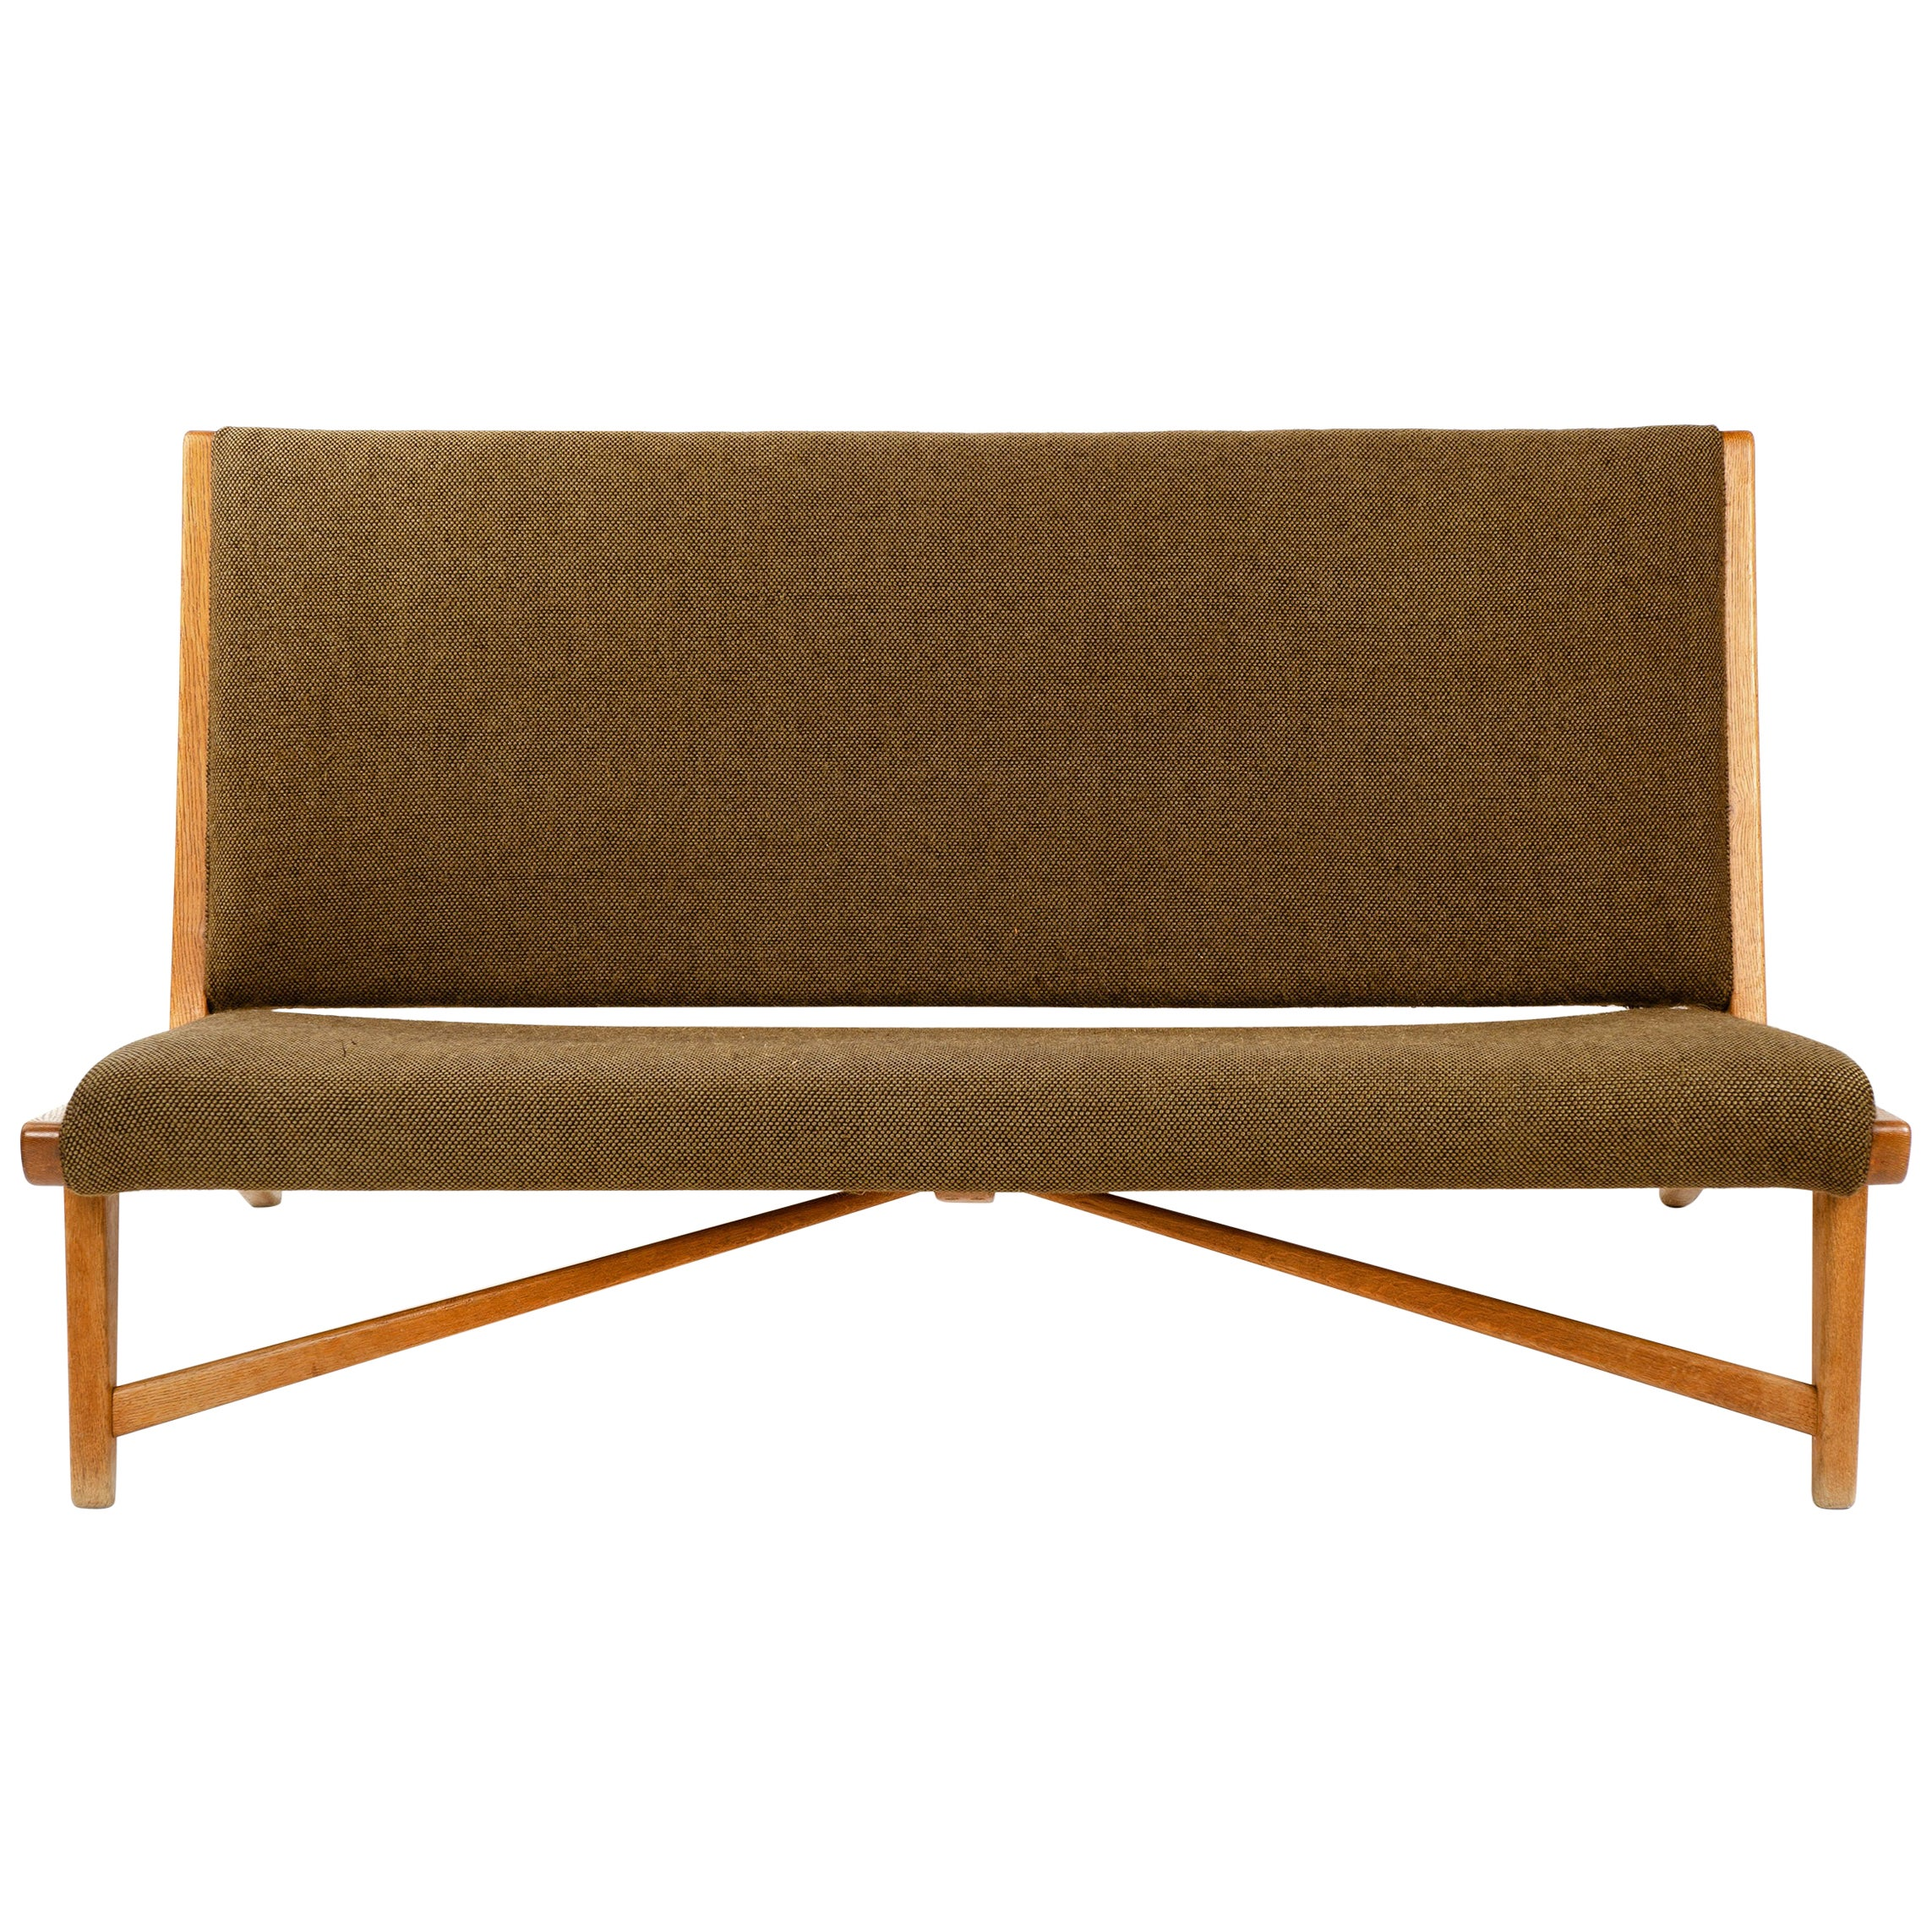 1950s Danish Oak Settee by Hans J. Wegner for Johannes Hansen